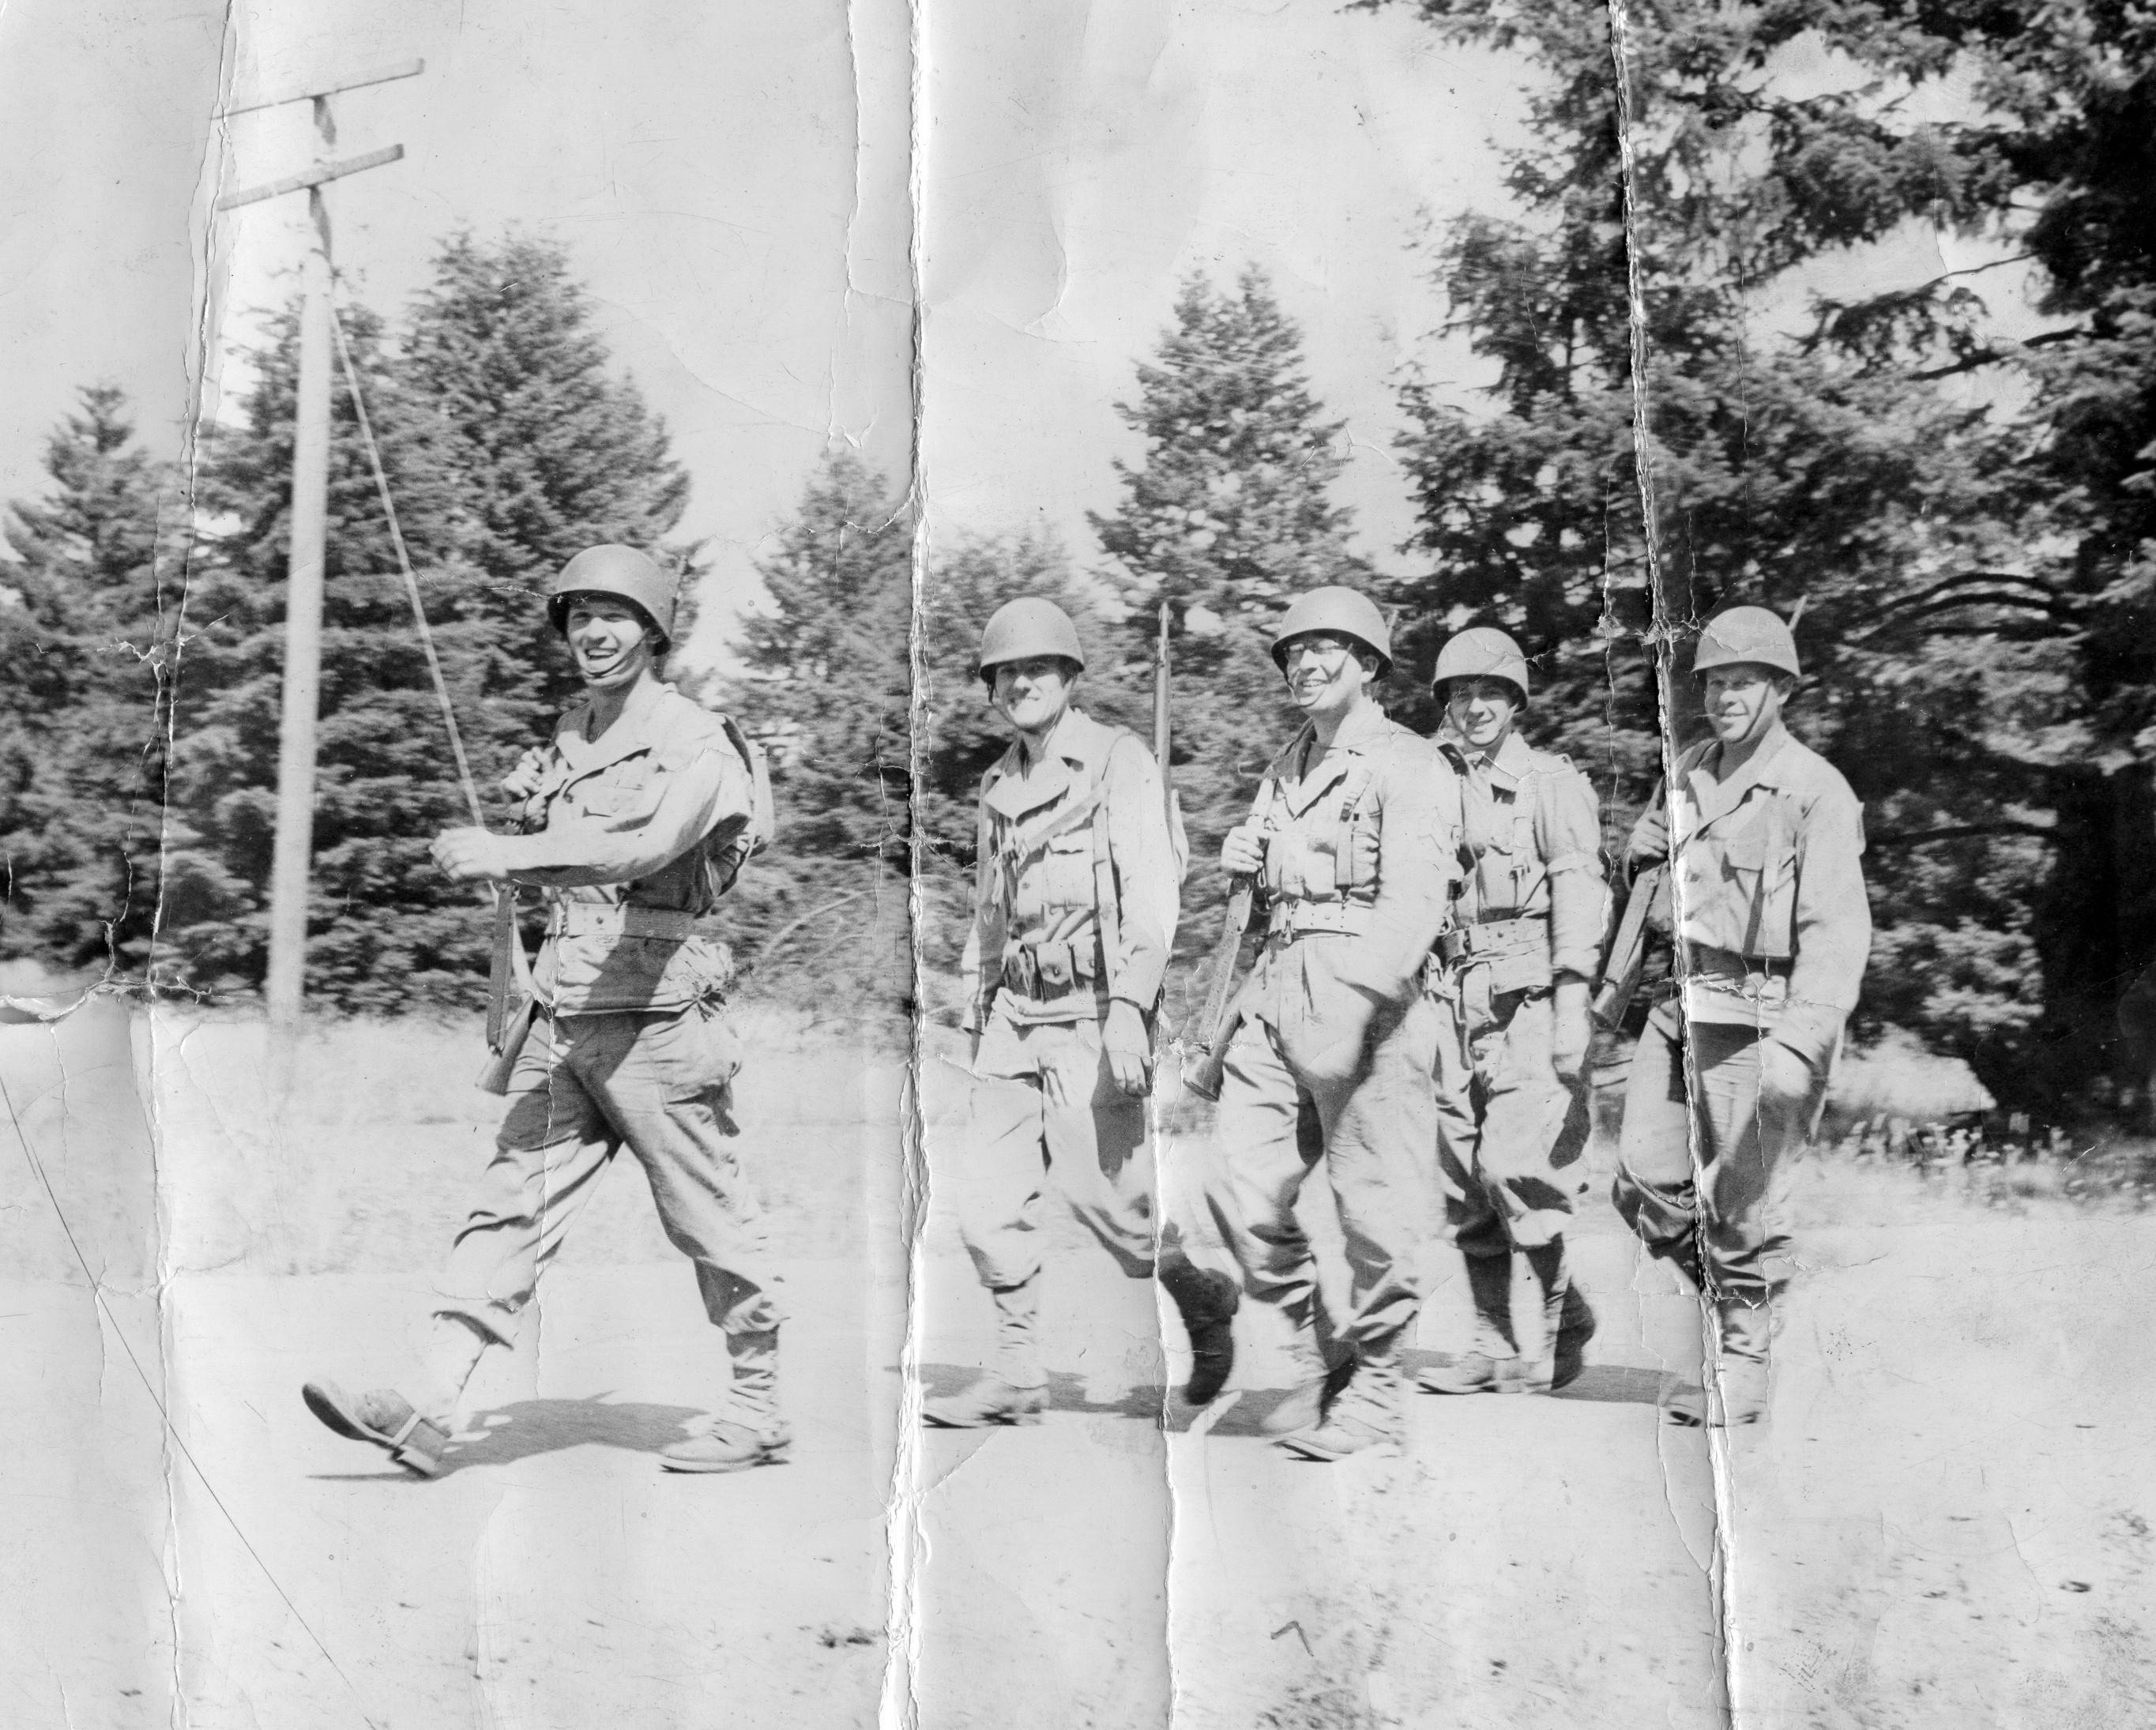 Summer 1944 at Fort Lewis - Johnny leads the way!